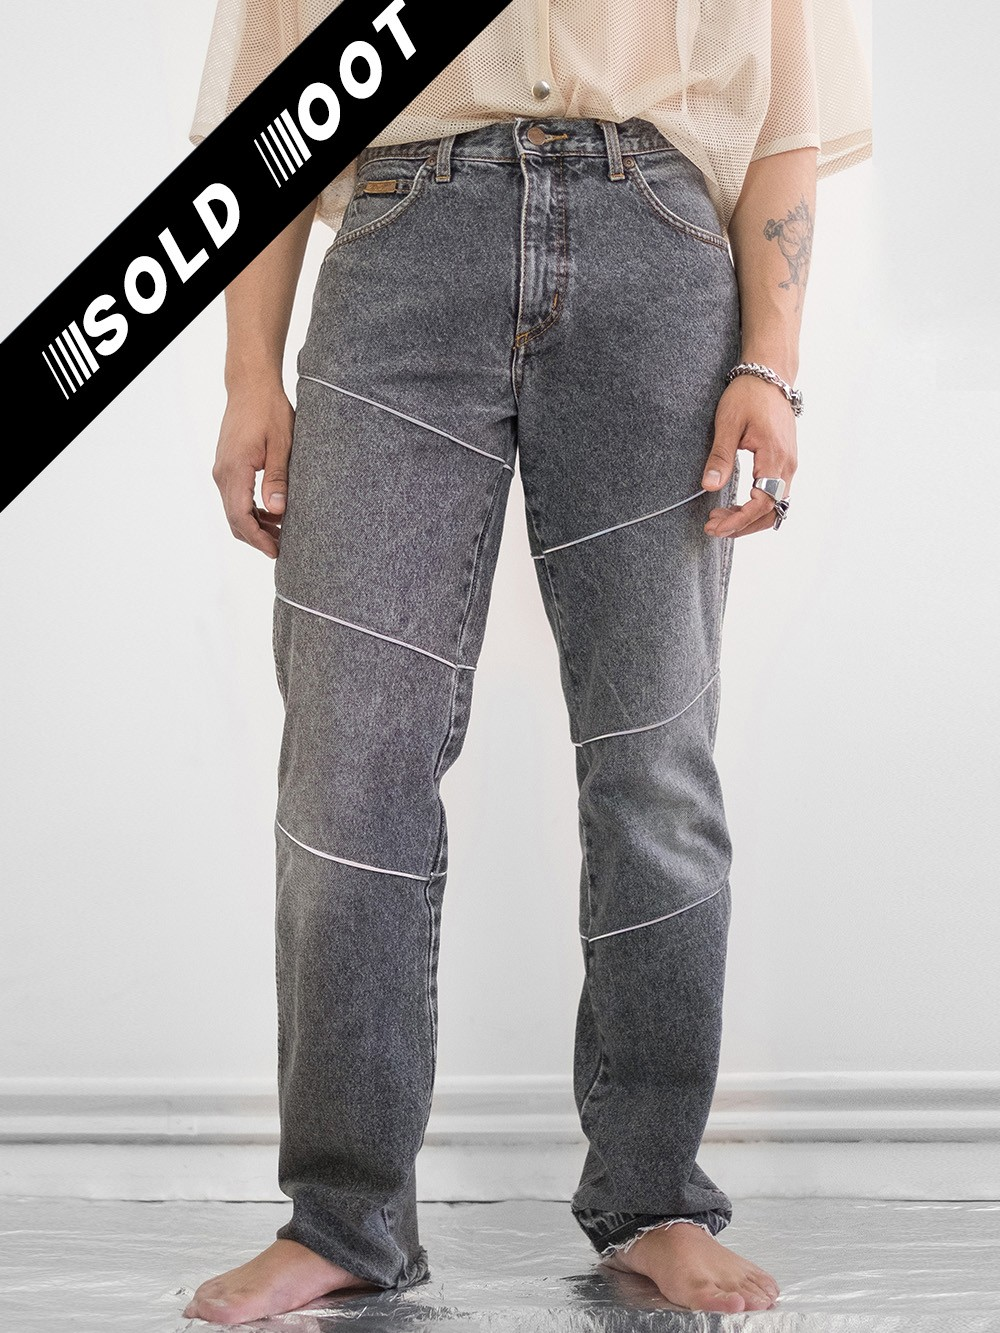 Reworked Reflective Jeans 224